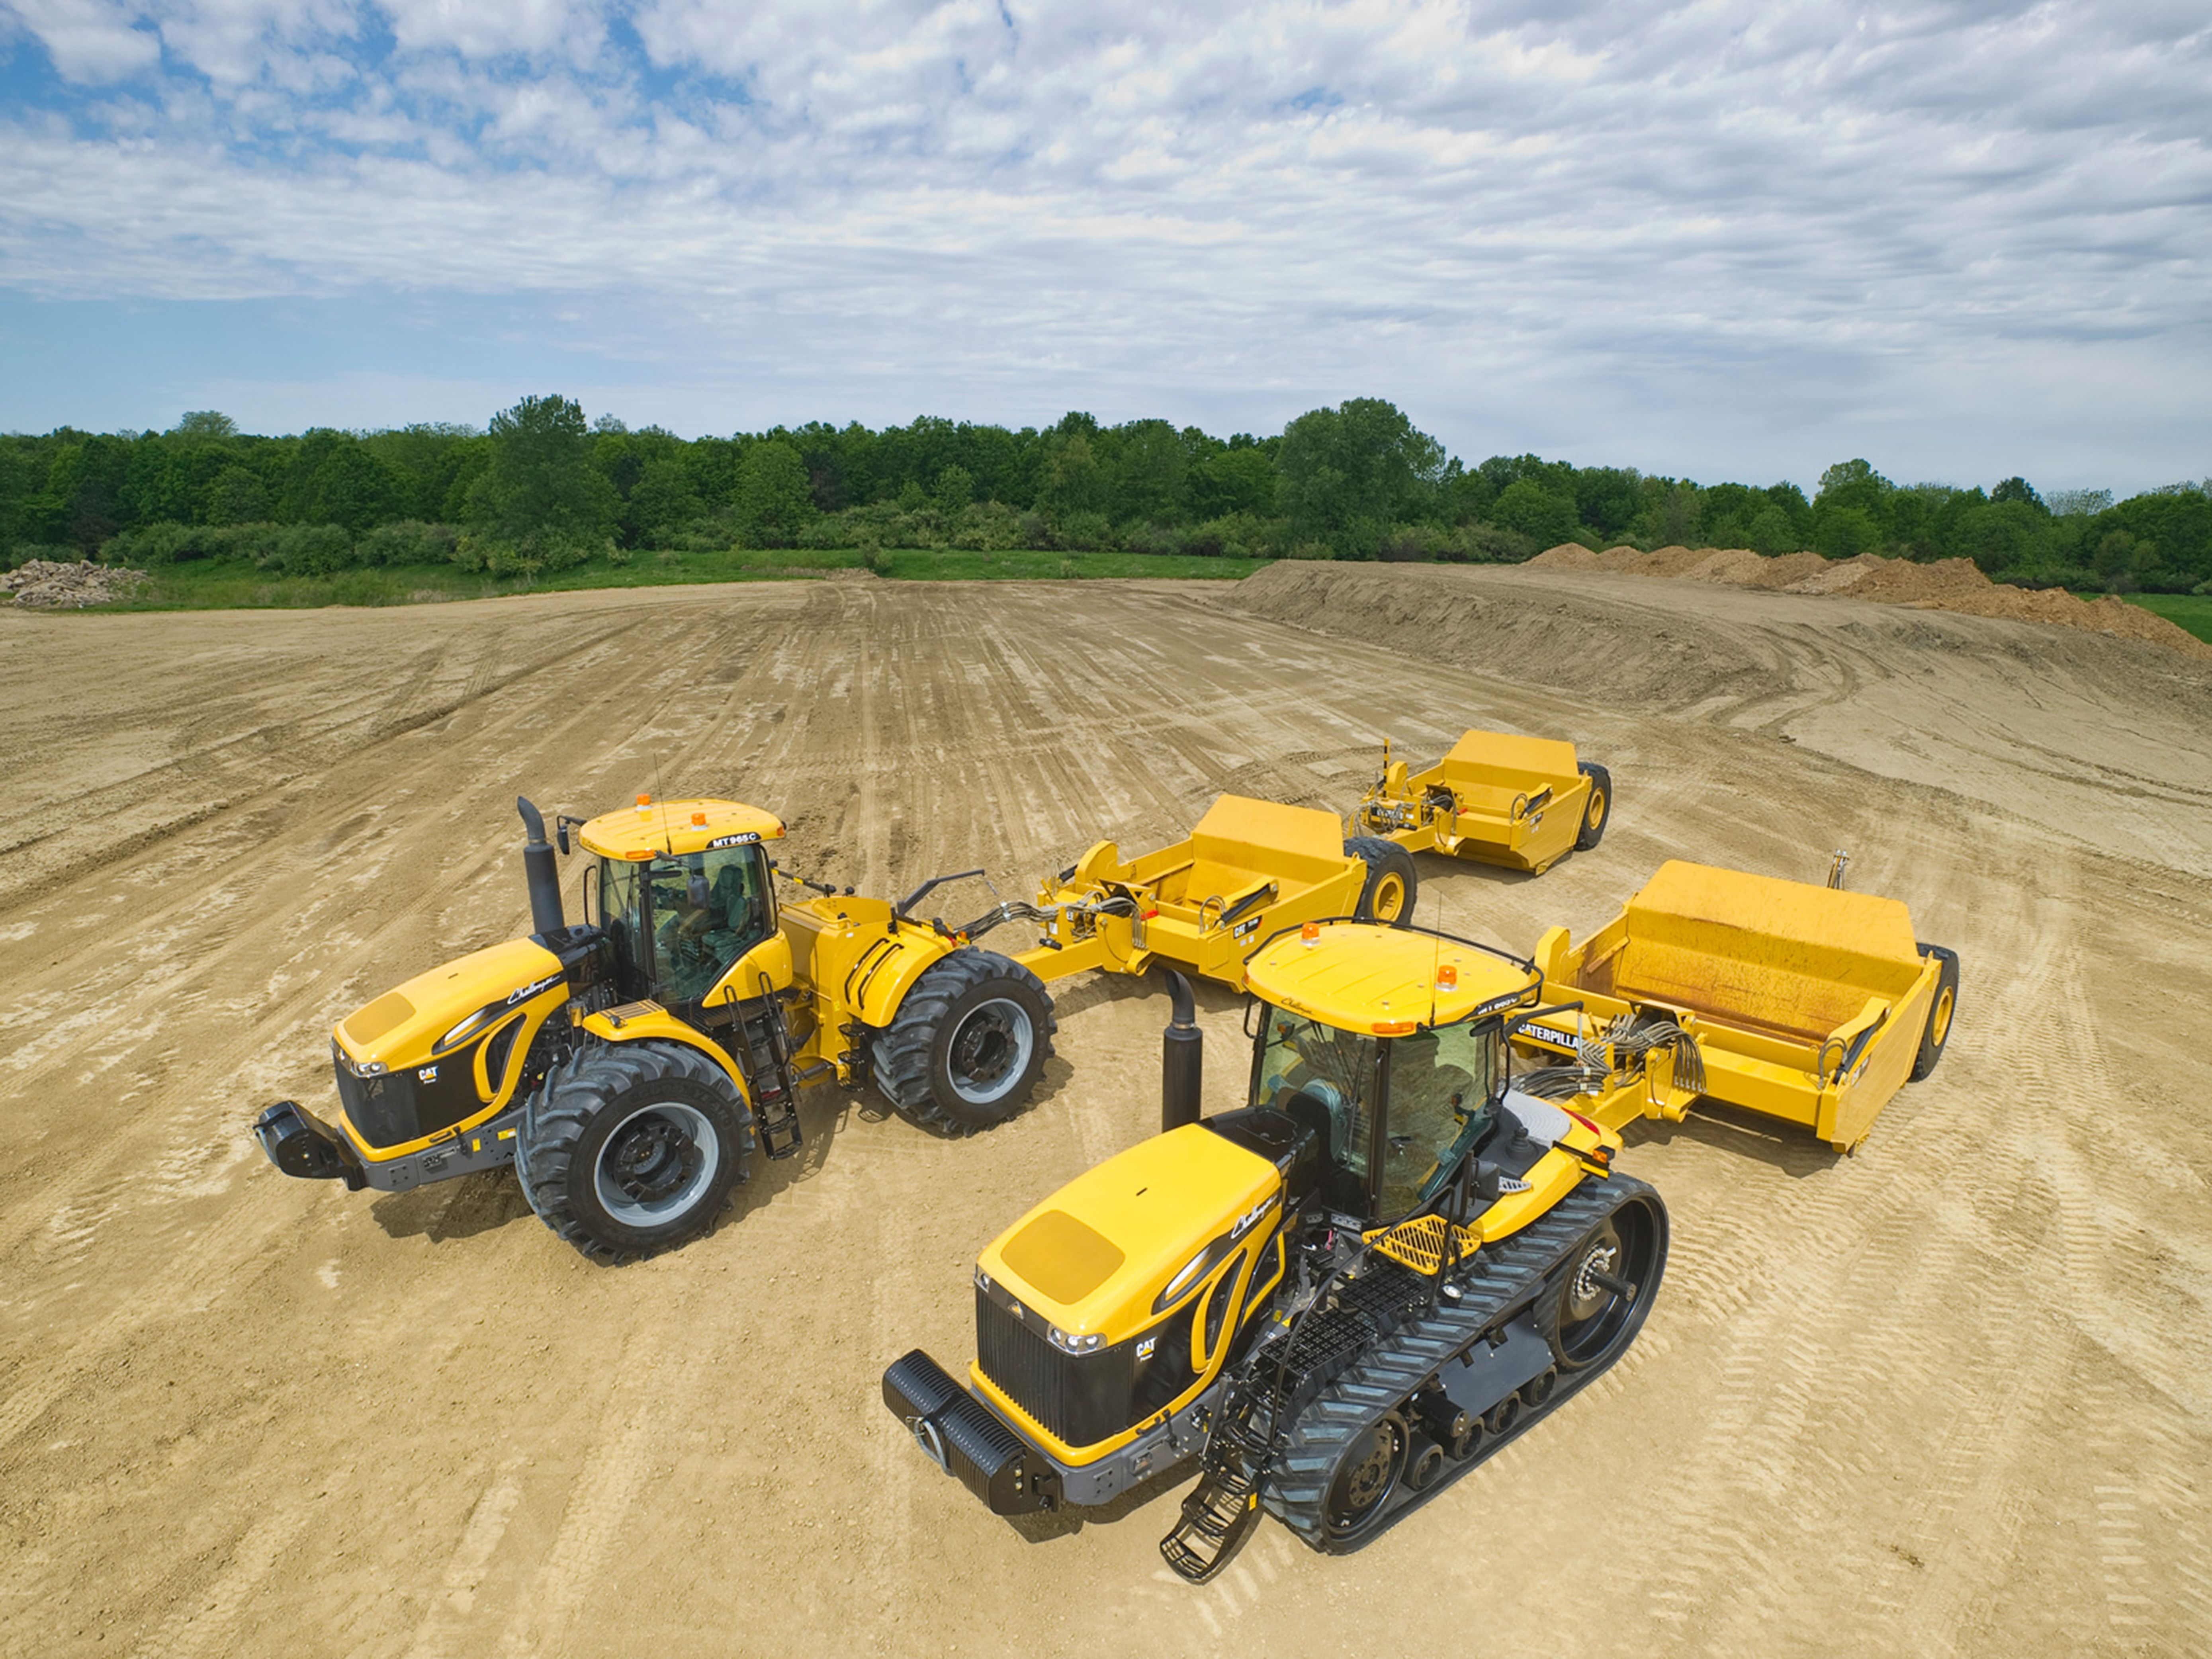 With access to the full line of over 300 Cat machines, the